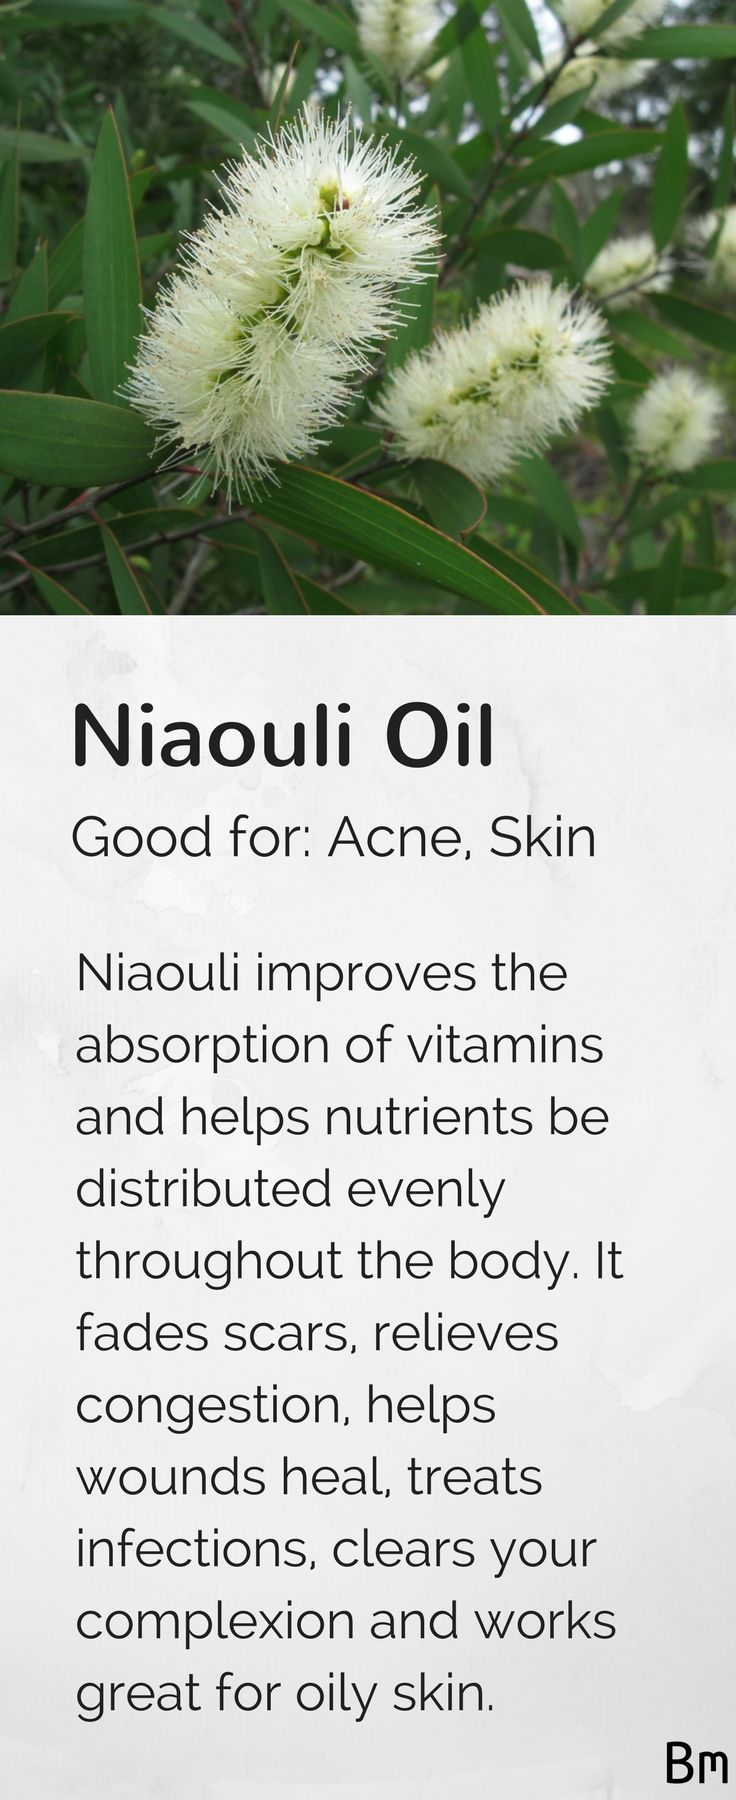 Niaouli essential oil fades scars, relieves congestion, helps wounds heal, treats infections and clears your complexion. Add this to your favourite moisturiser and use it after cleansing or add some to your body lotion and use it on any scars. Learn more about niaouli and other essential oils in this complete guide! Just click on the pin above :)